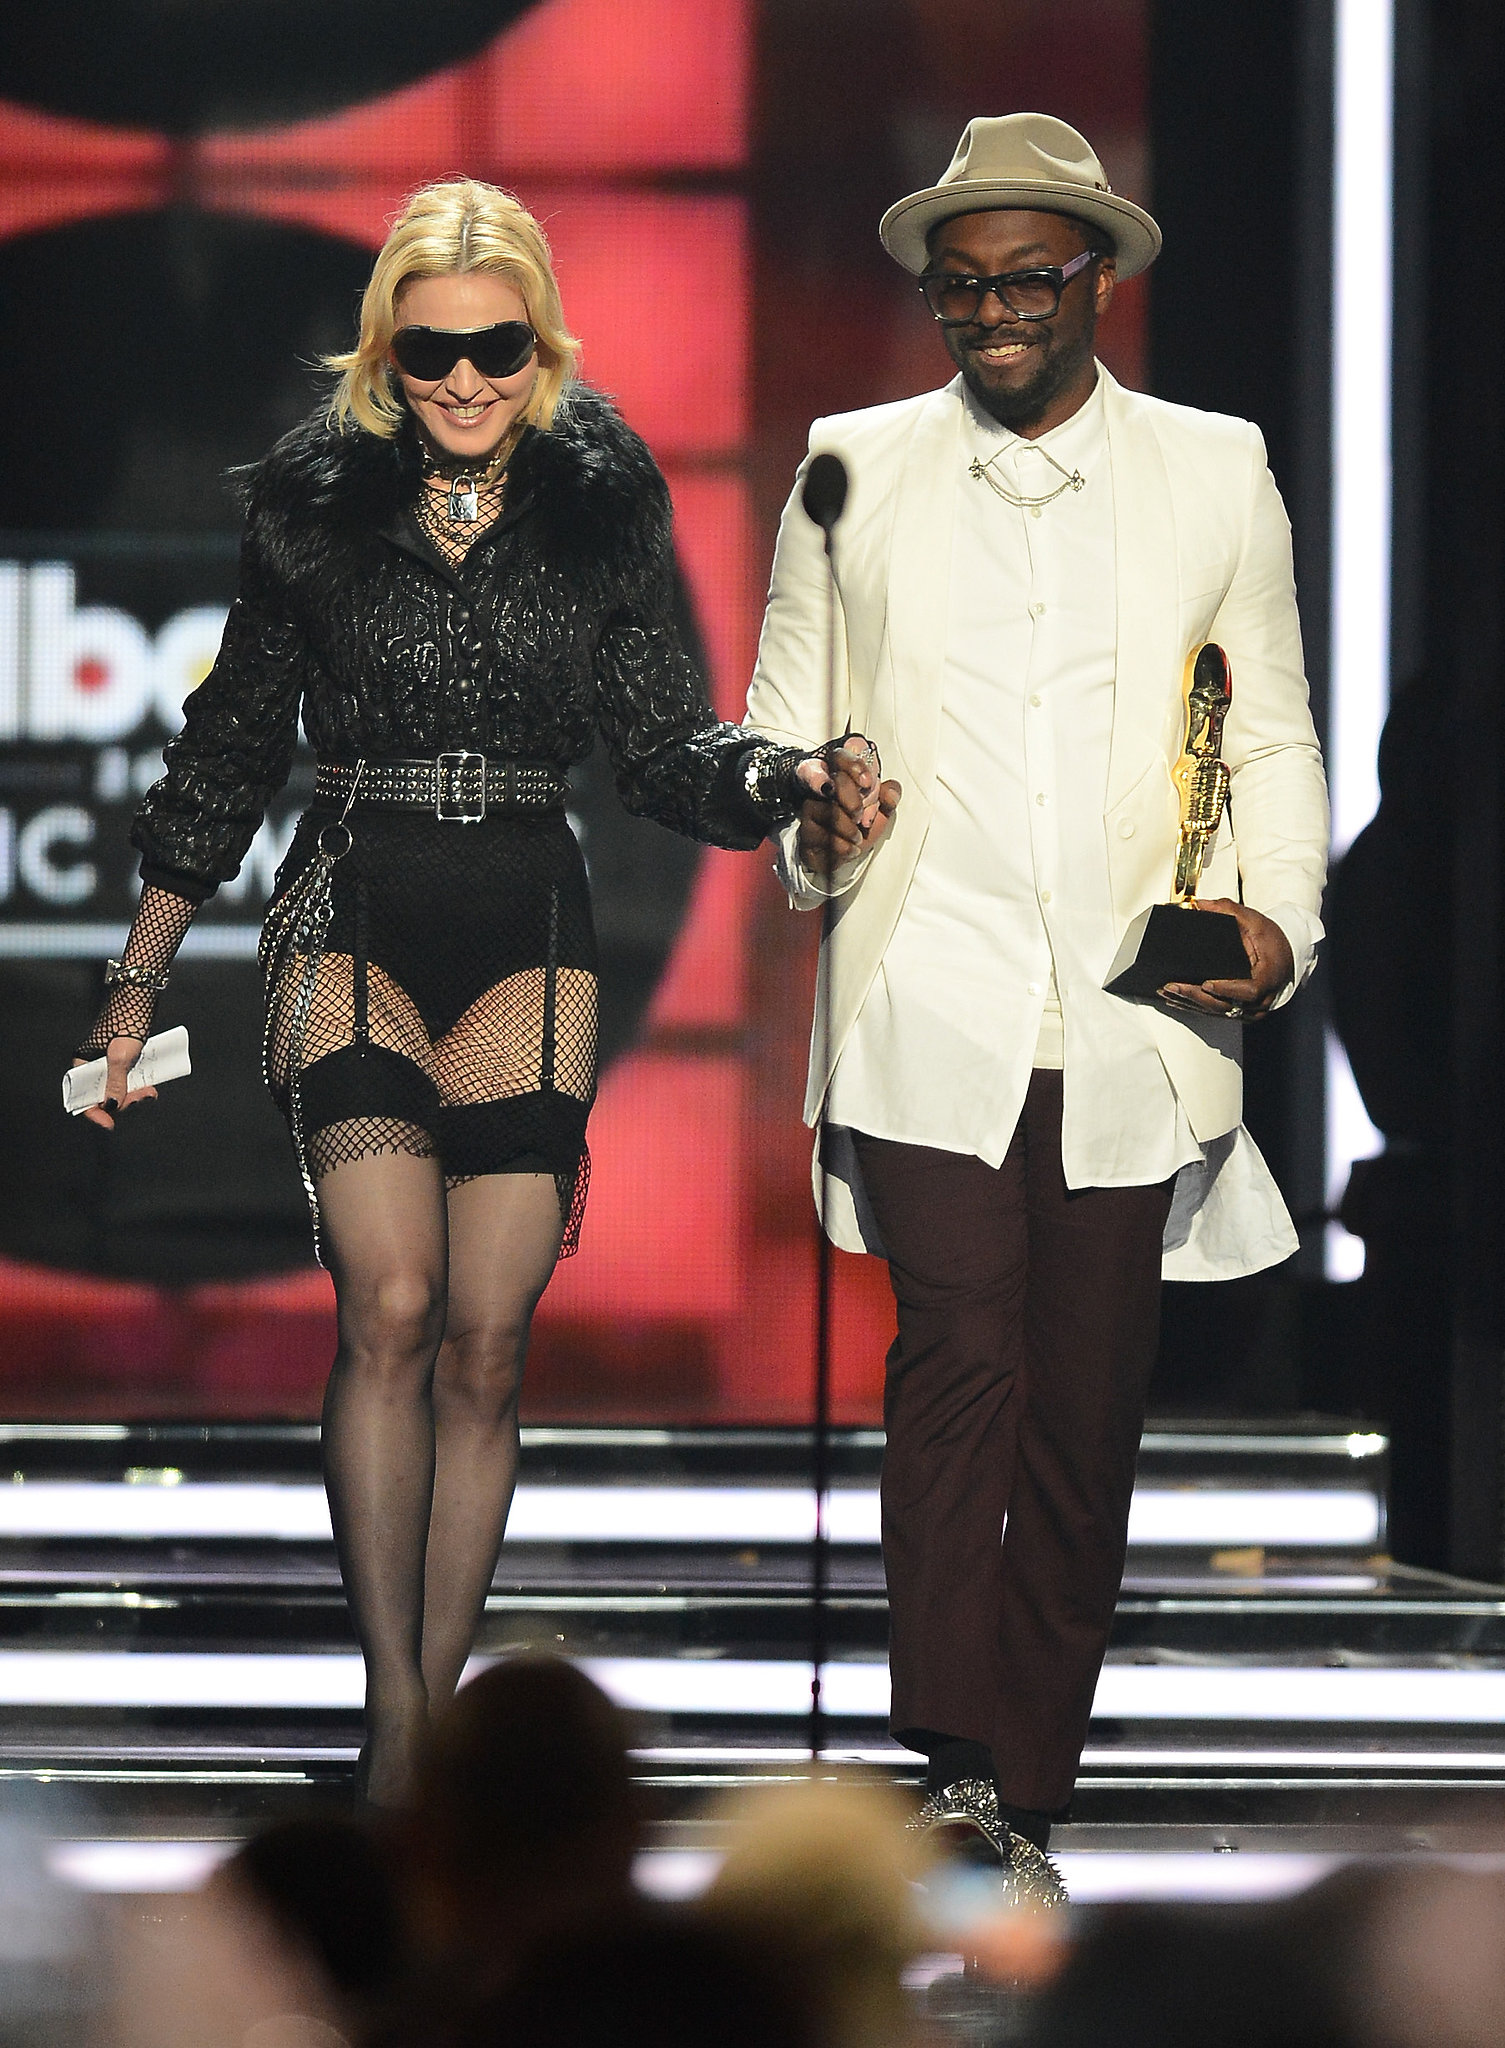 A pantsless Madonna took the stage at the Billboard Music Awards, accepting the award for touring artist of the year from Will.i.am.